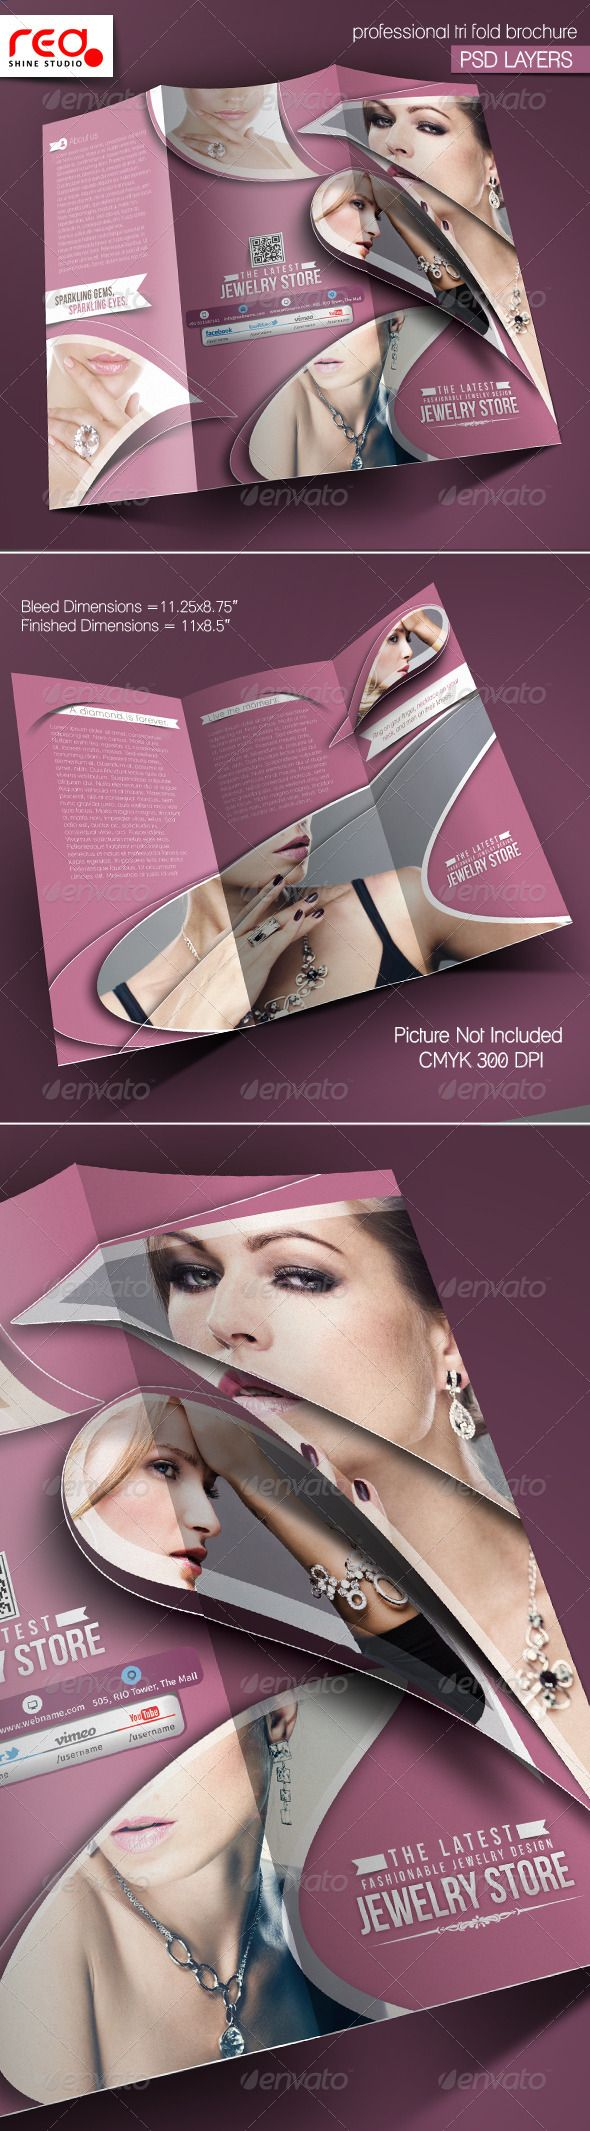 Jewelry Shop Trifold Brochure Template    Brochure Template